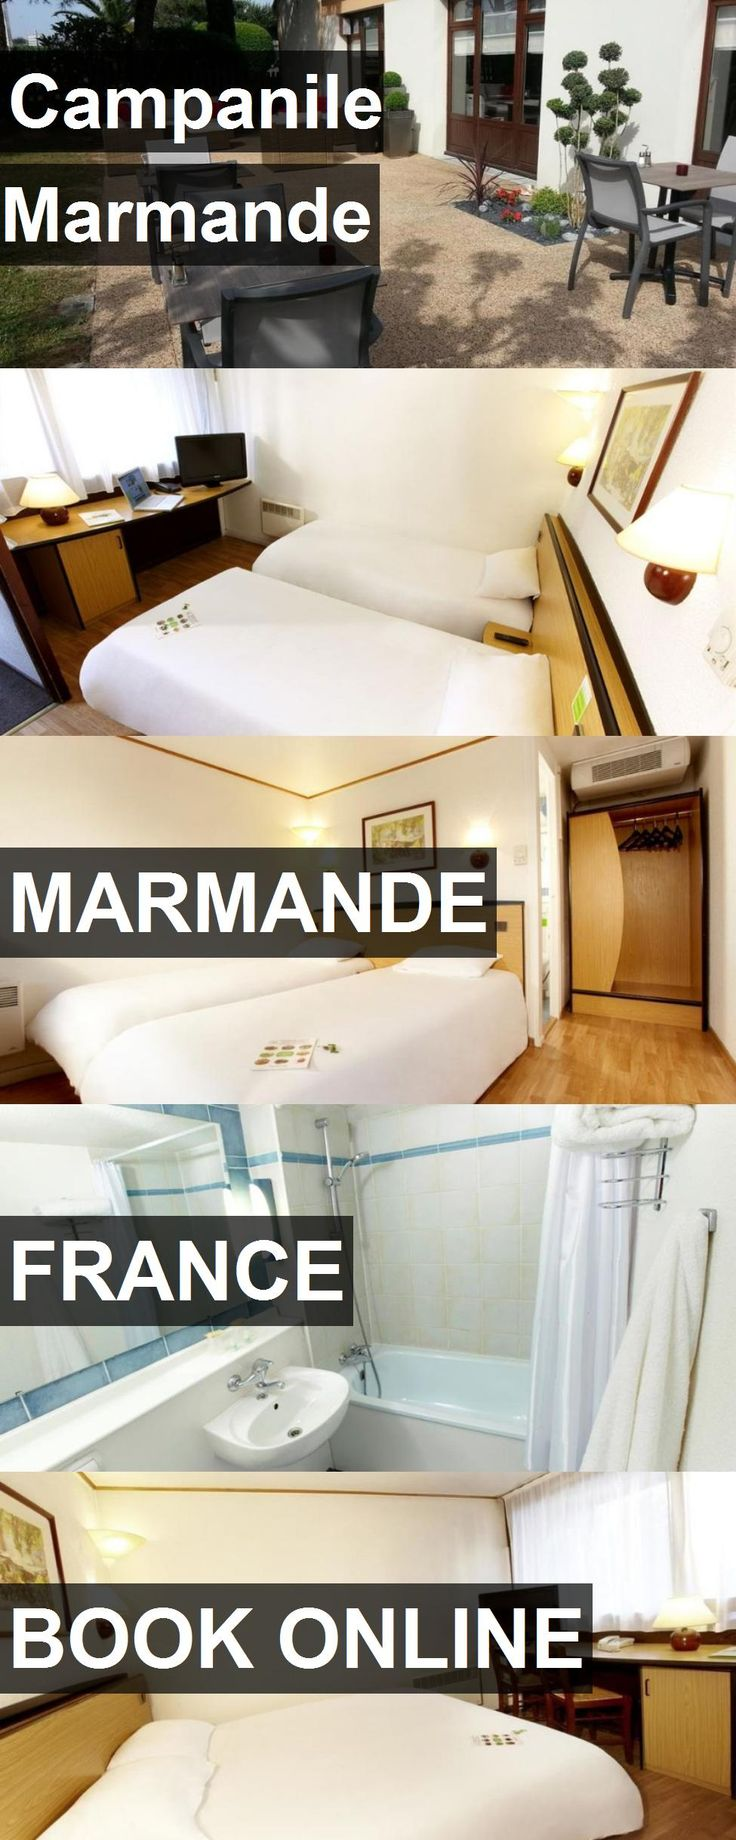 Hotel Campanile Marmande in Marmande, France. For more information, photos, reviews and best prices please follow the link. #France #Marmande #hotel #travel #vacation